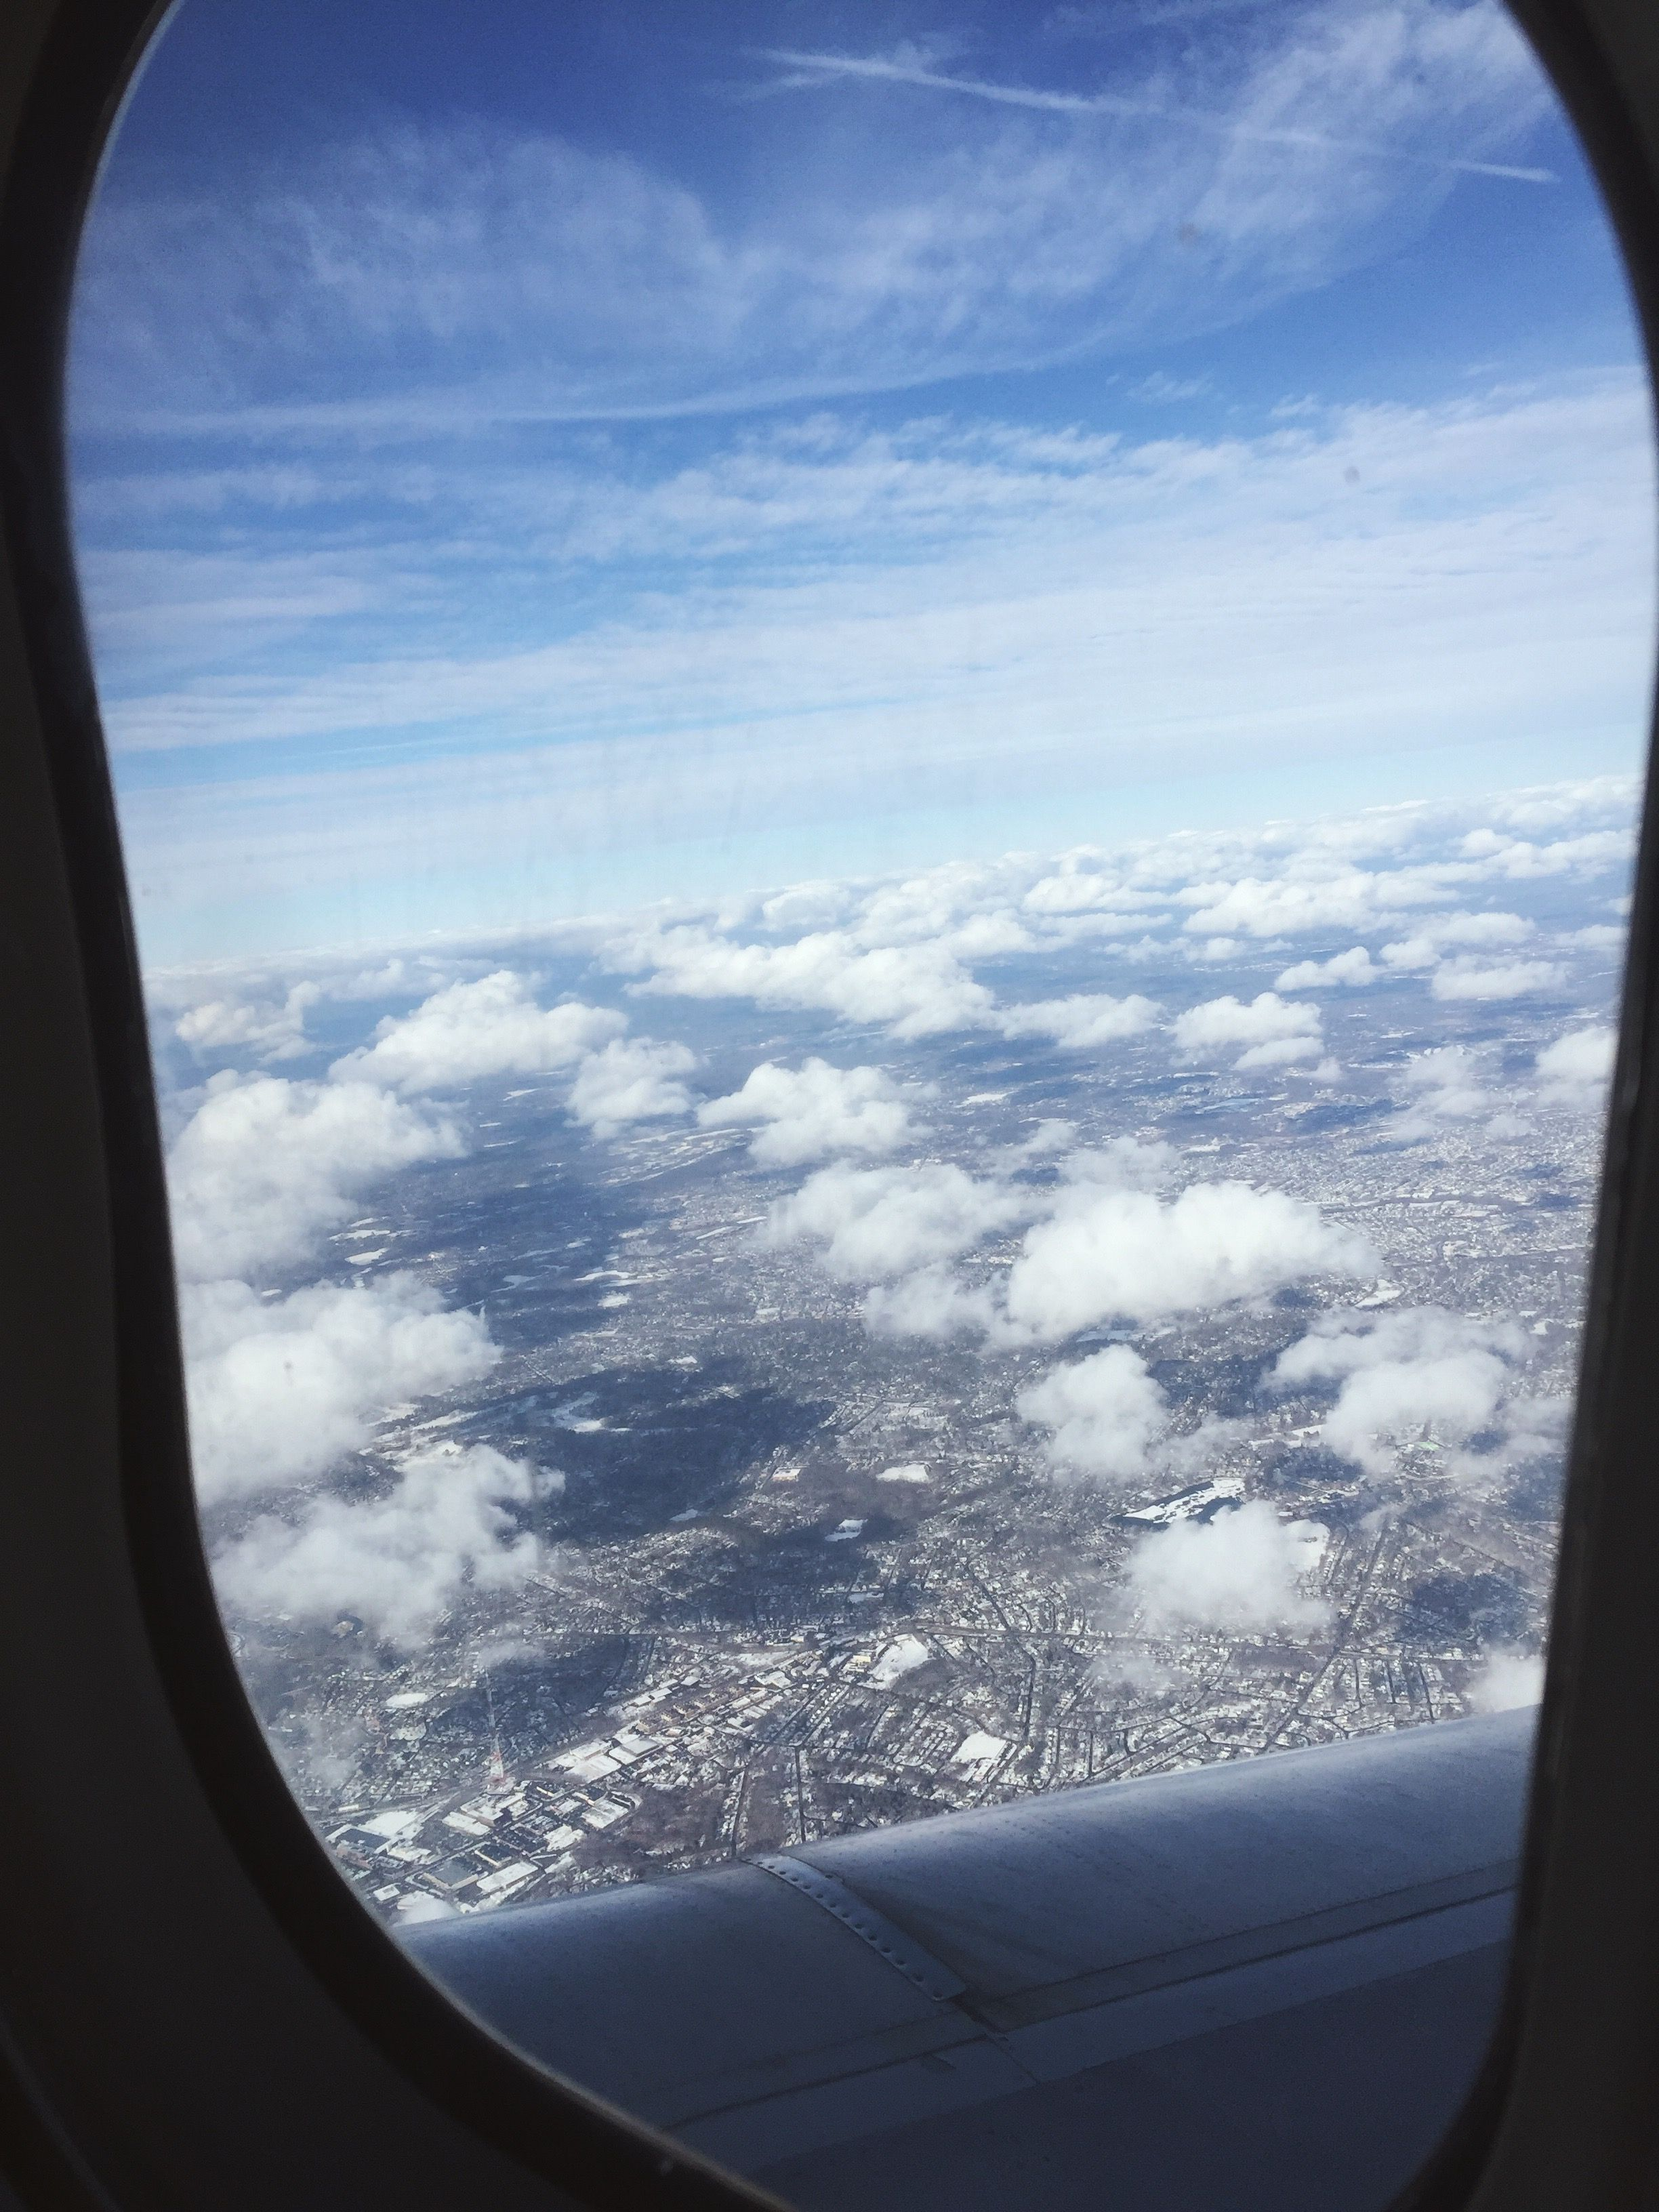 Pin By Shawn Patten On Airplane Window Views Airplane Window